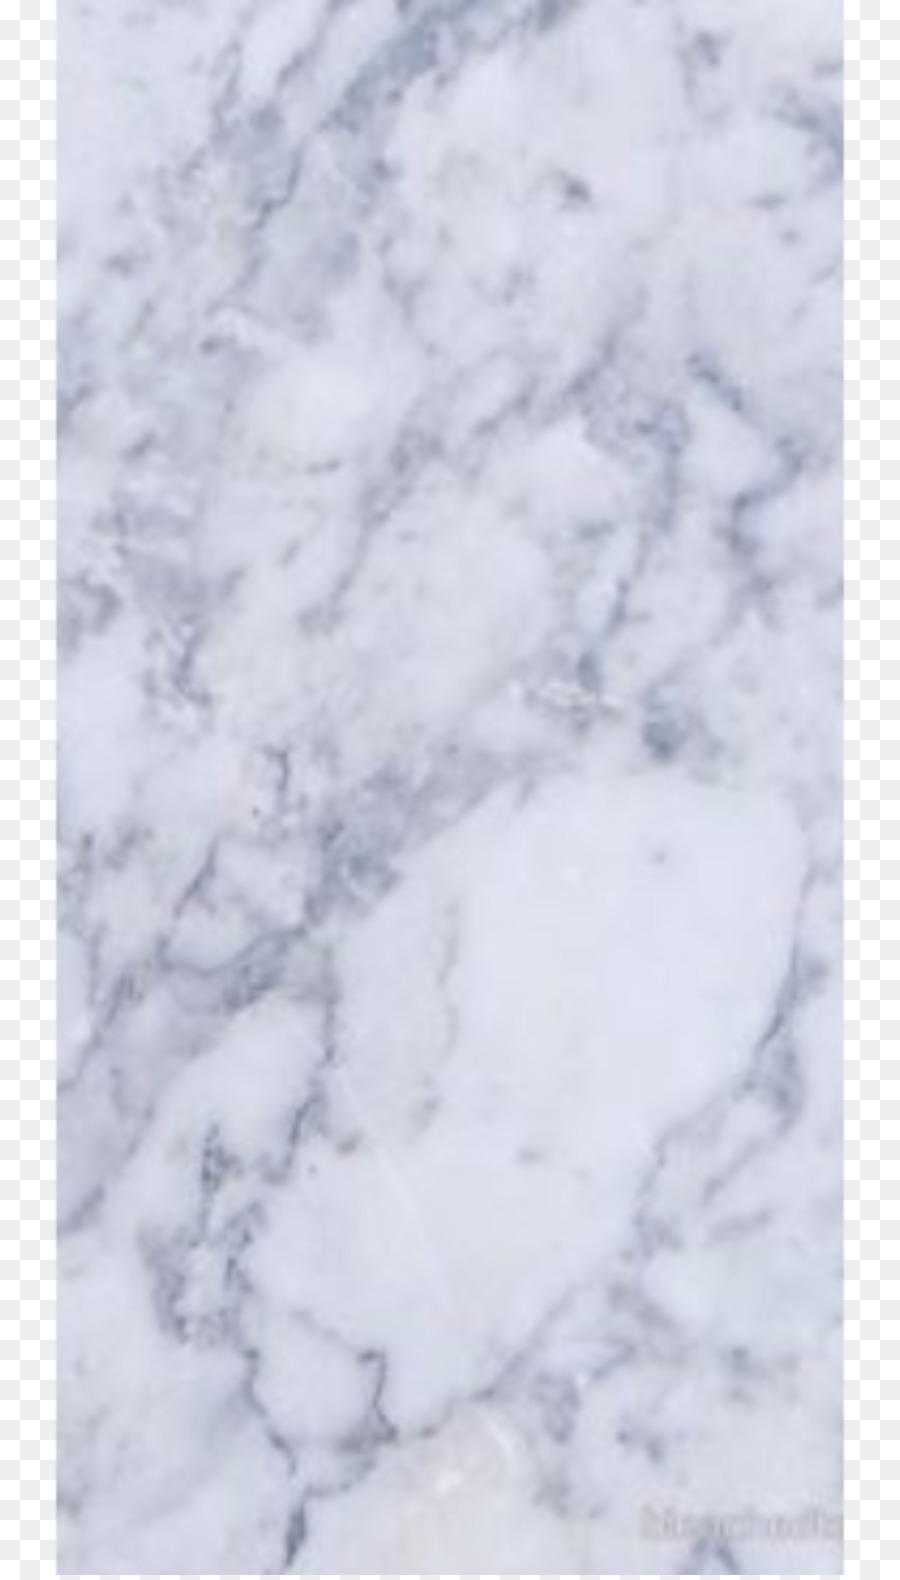 Zazzle Marble Iphone 6 Desktop Wallpaper Computer Marbel